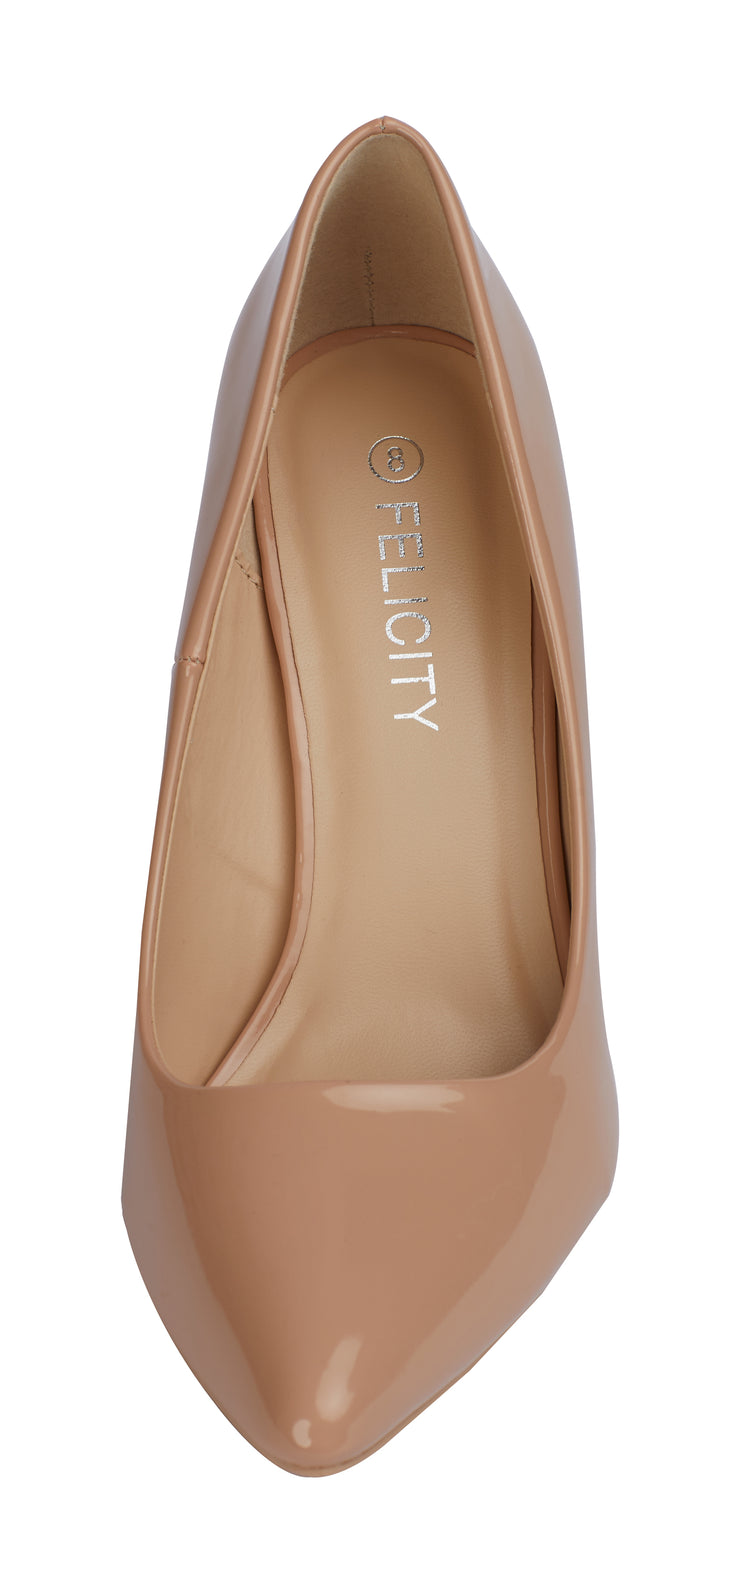 Nude Vinyl Pointed Toe Pumps Stilettos Heel Shoes - Berness